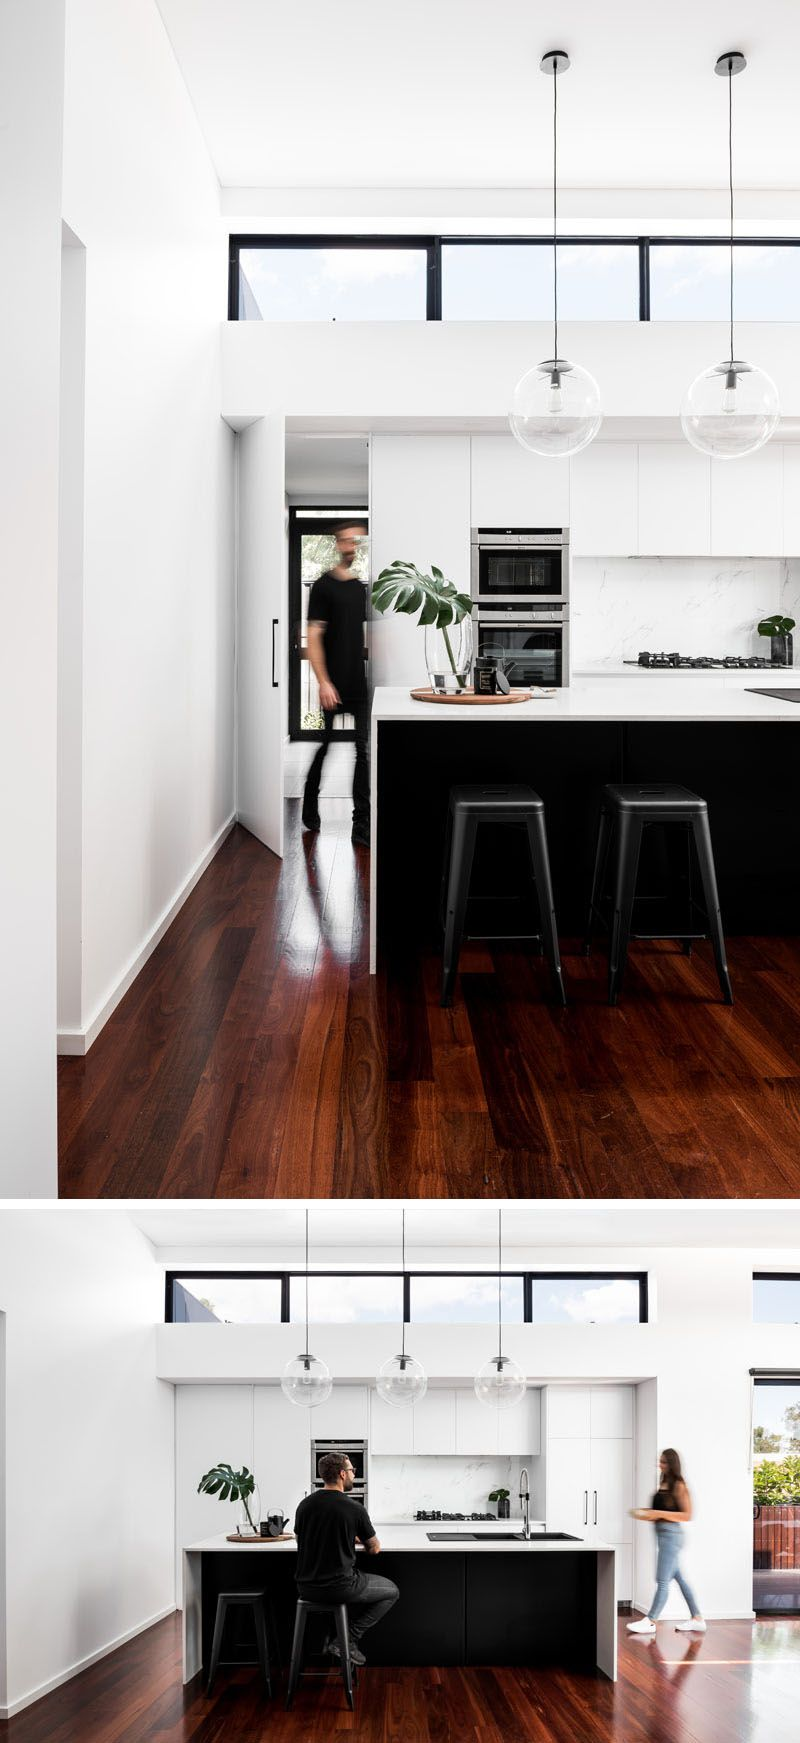 The Contemporary Renovation Of A 100 Year Old Home In Australia Home House Interior Home Renovation